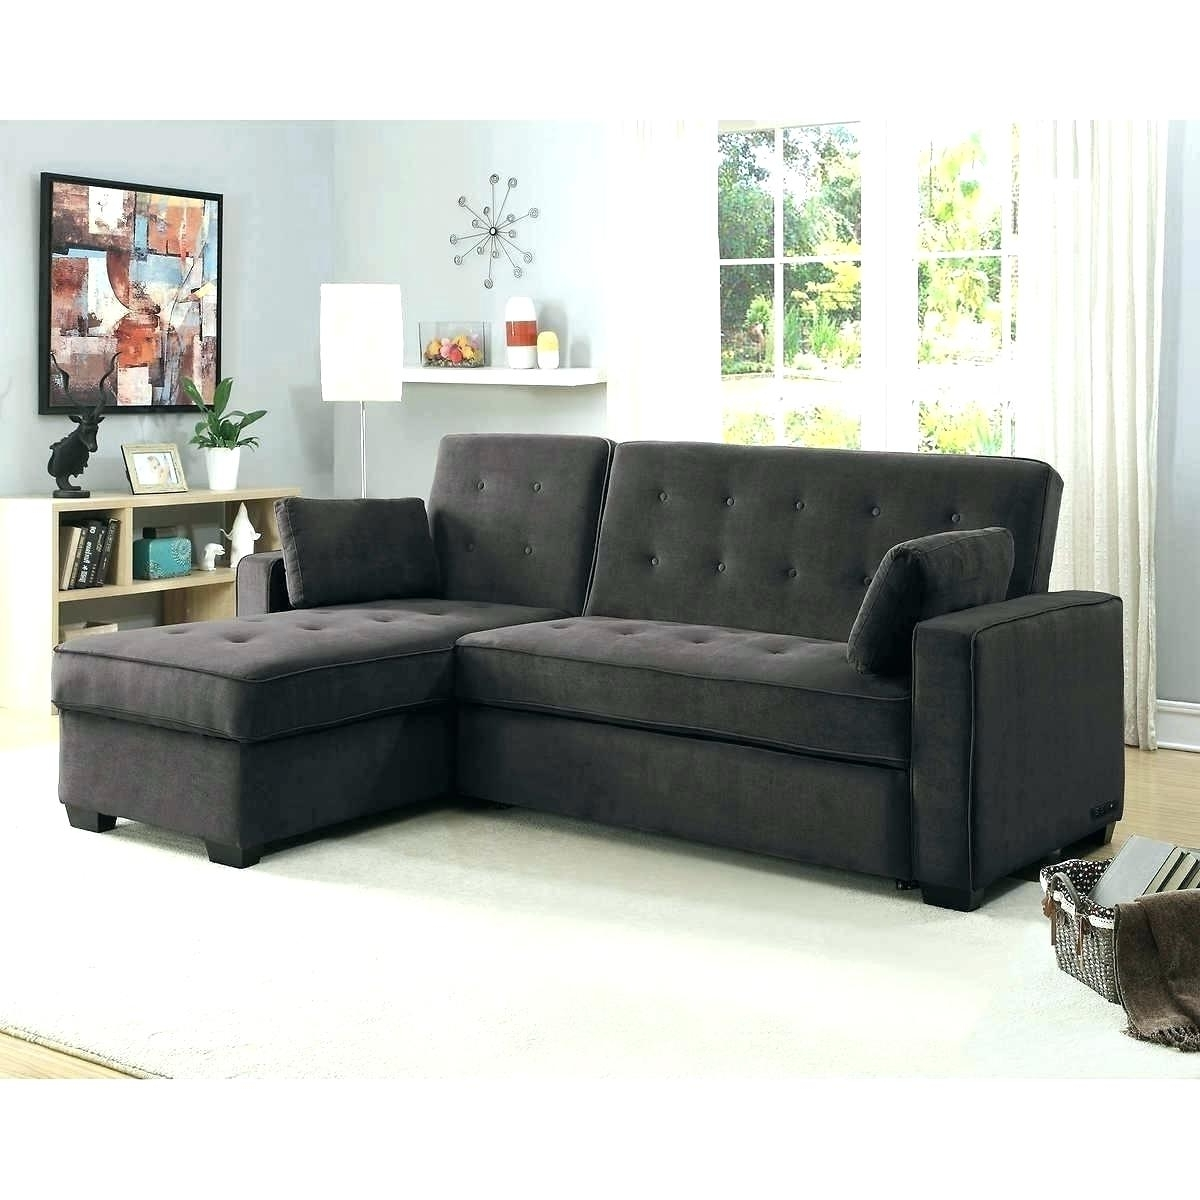 Berkline Sectional Leather Sofas Recliner – Poikilothermia Inside Most Popular Berkline Sectional Sofas (View 13 of 15)